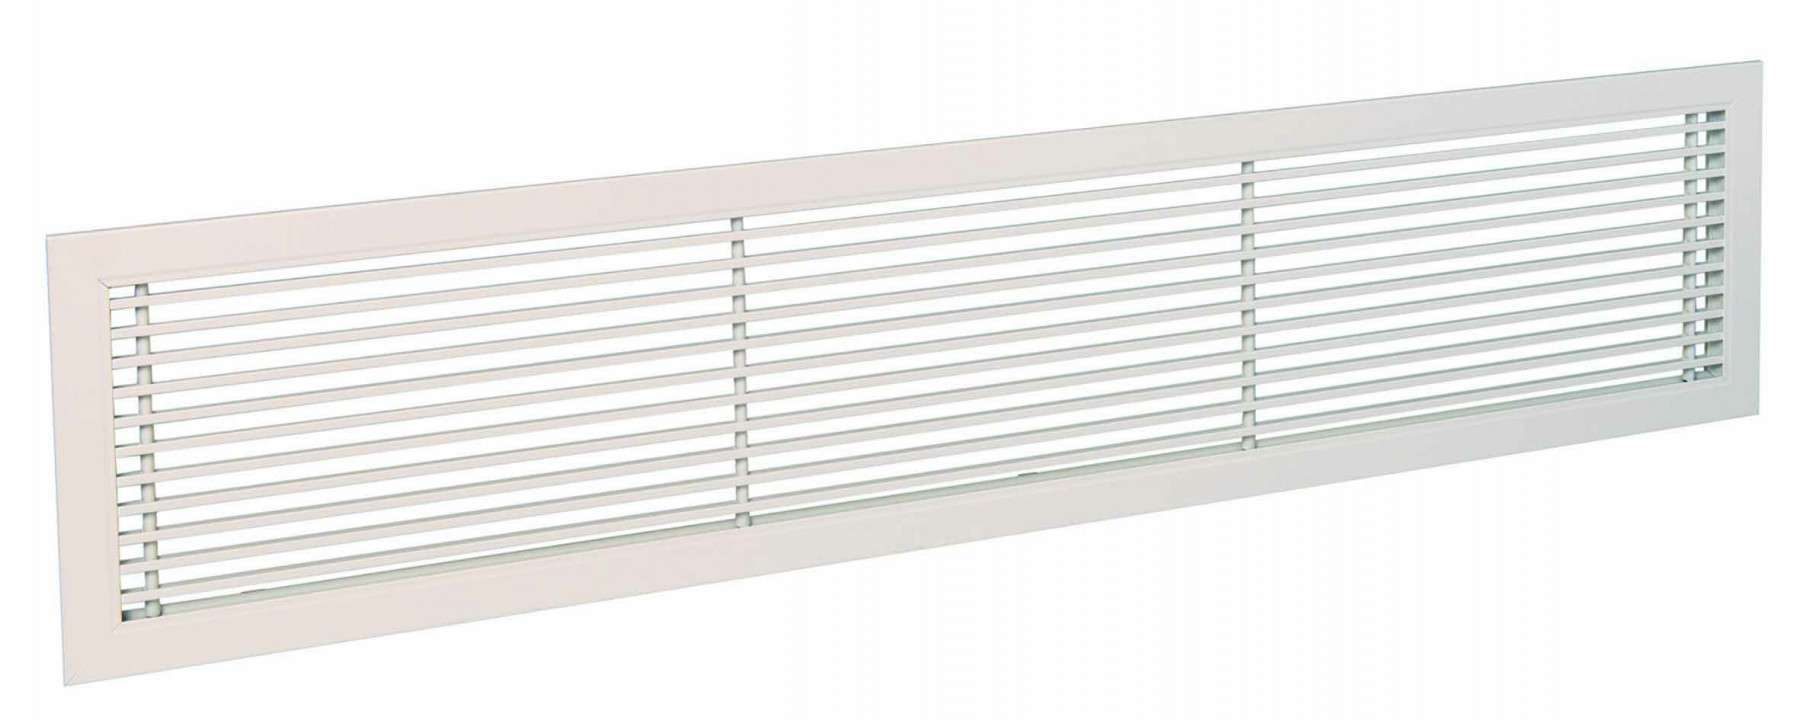 Grilles intérieures GRIDLINED WALL F3 200X100 RAL9010 Aldes 11050562